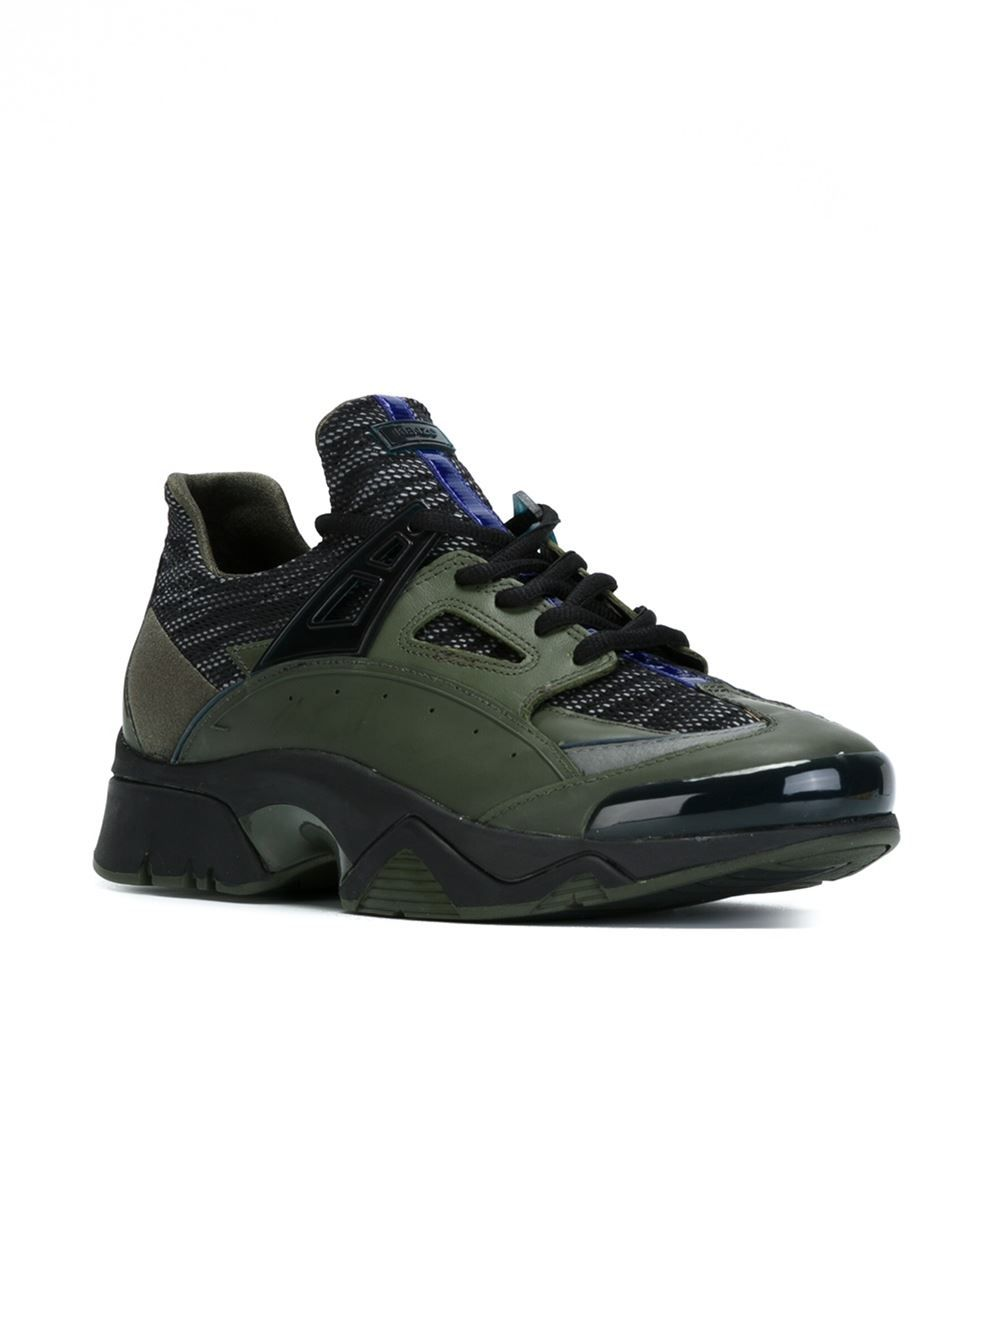 54d0a03d7 Kenzo 'sonic' Sneakers - Capsule By Eso - Farfetch.com | shoes ...